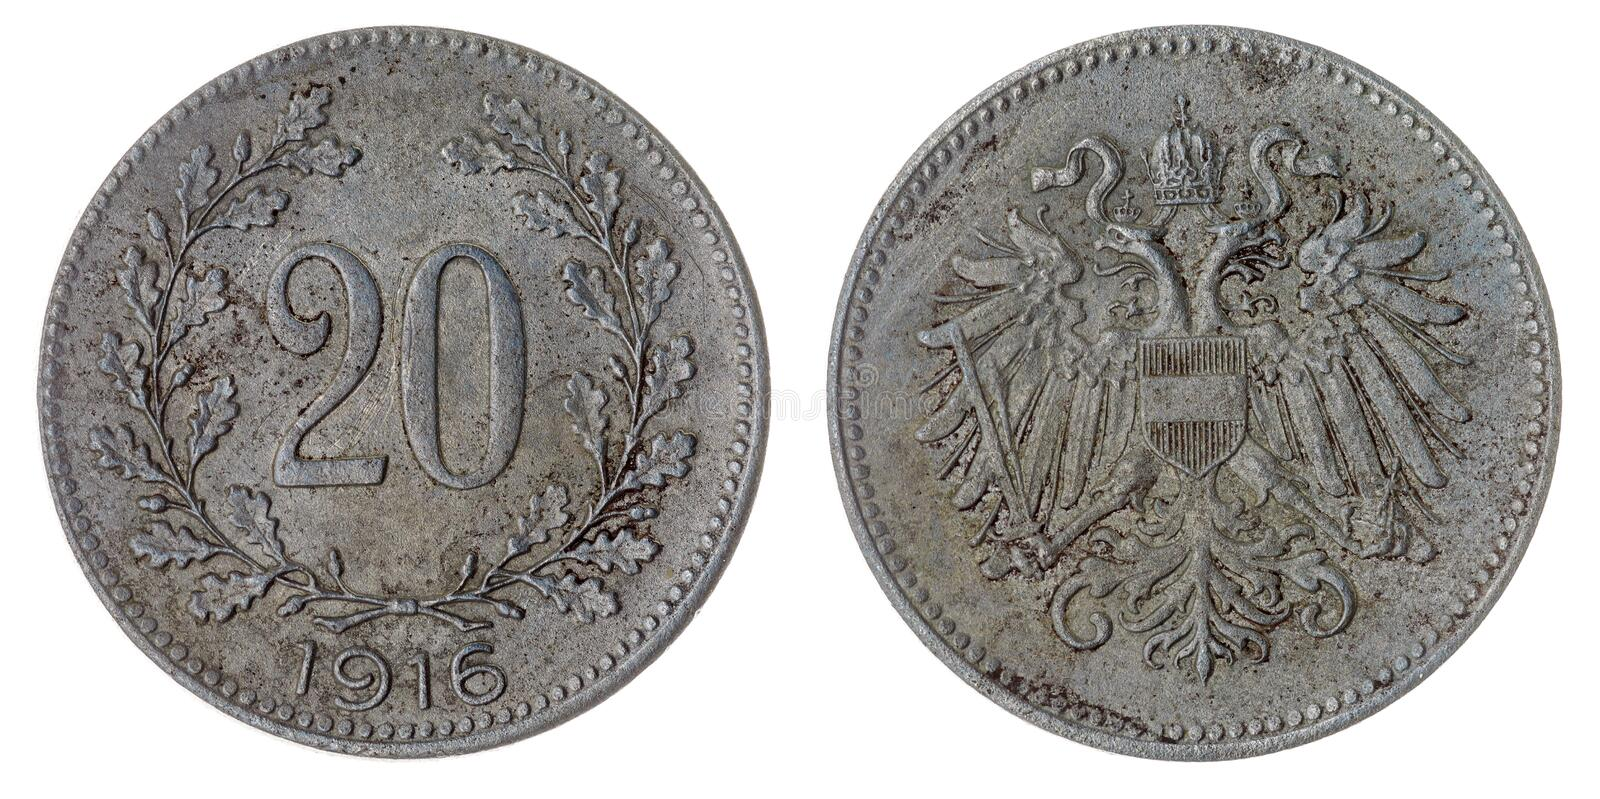 20 heller 1916 coin isolated on white background, Austro-Hungarian Empire. Iron 20 heller 1916 coin isolated on white background, Austro-Hungarian Empire stock photography